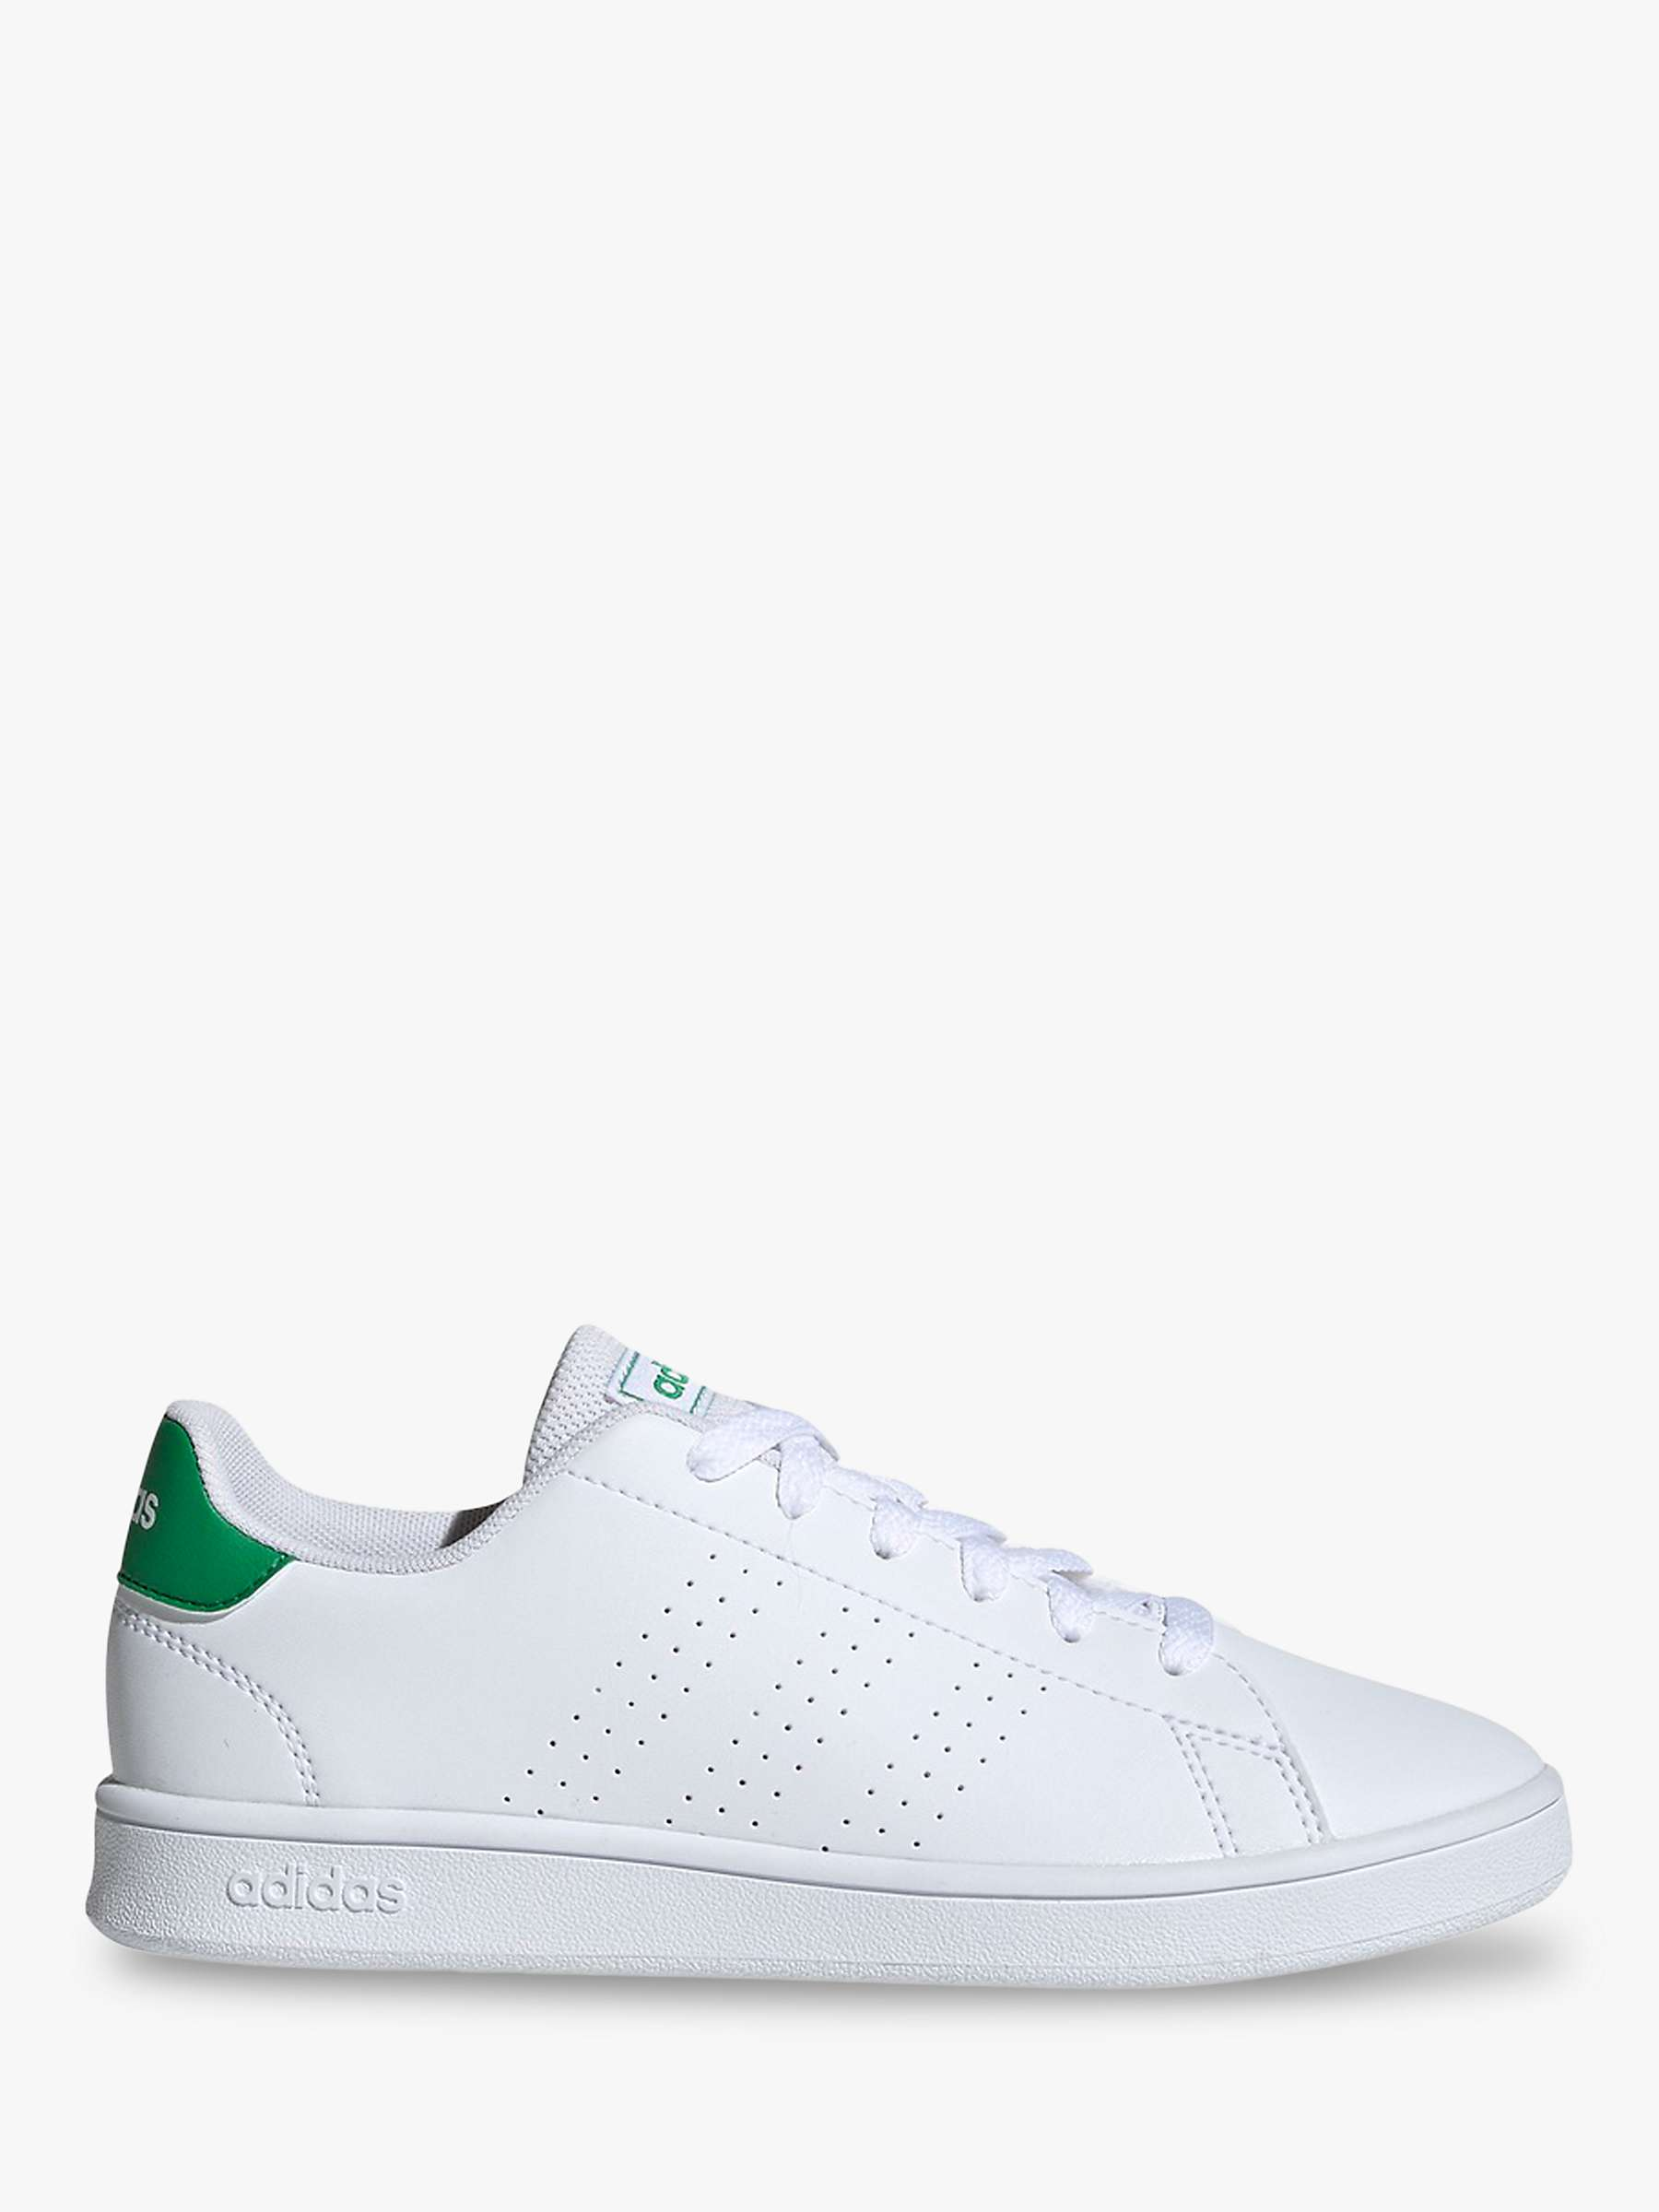 adidas Children's Advantage Trainers, FTWR White/Green/Grey Two